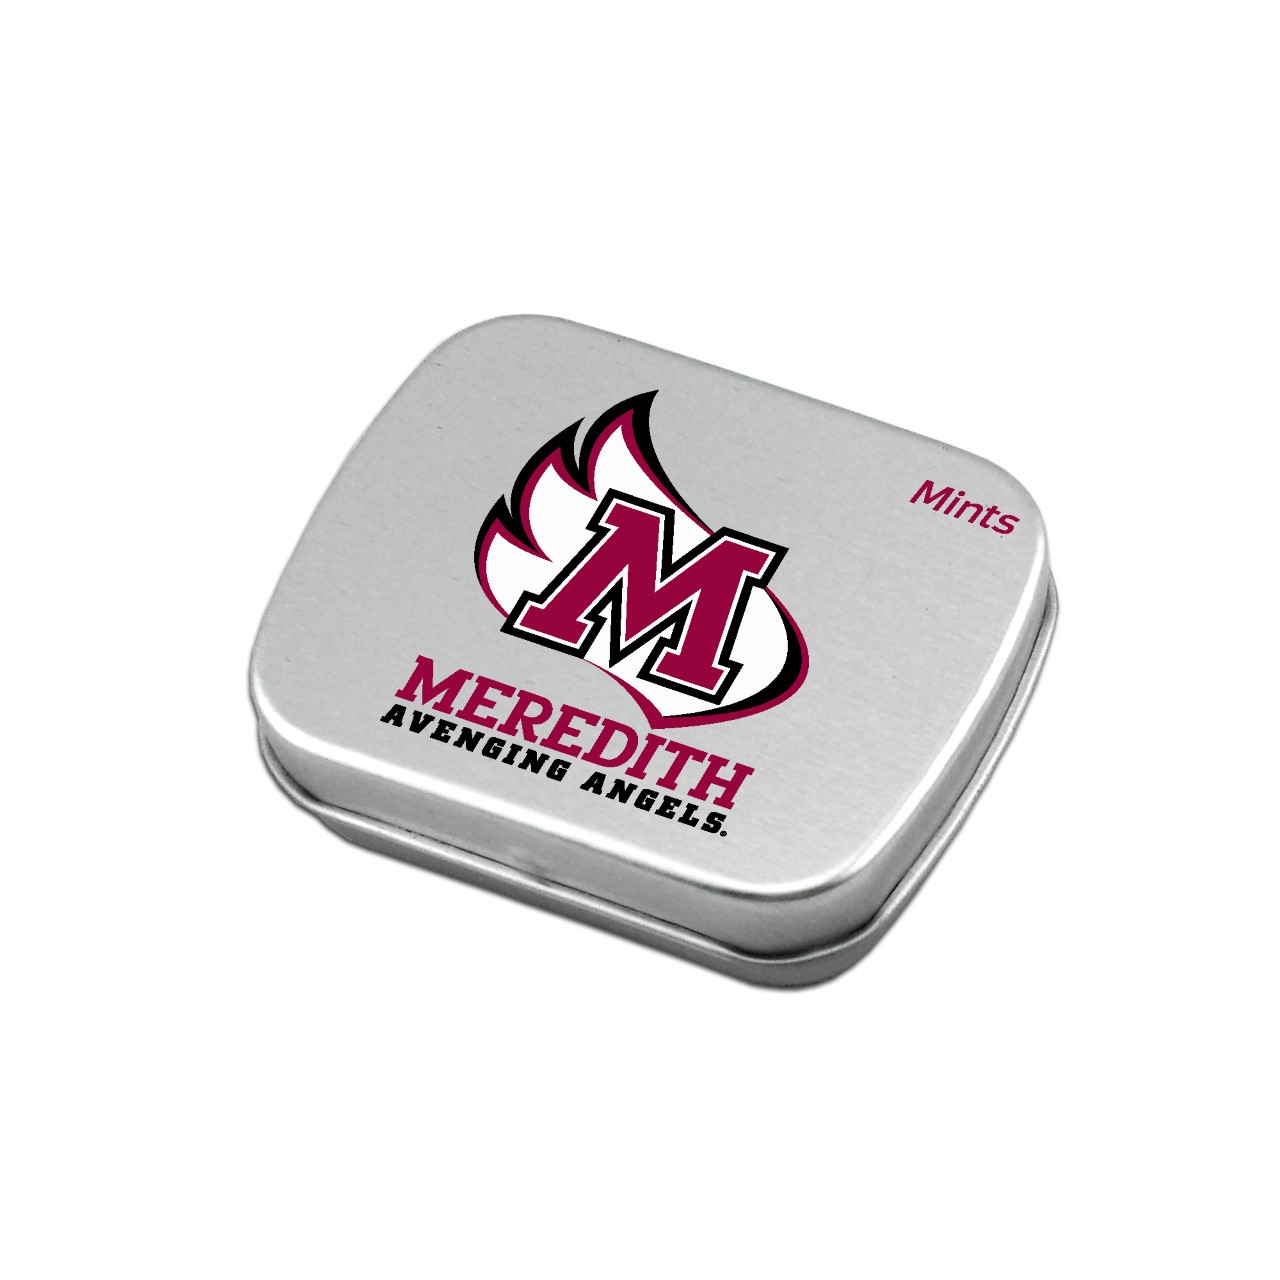 Image for the Meredith Branded Mint Tin product